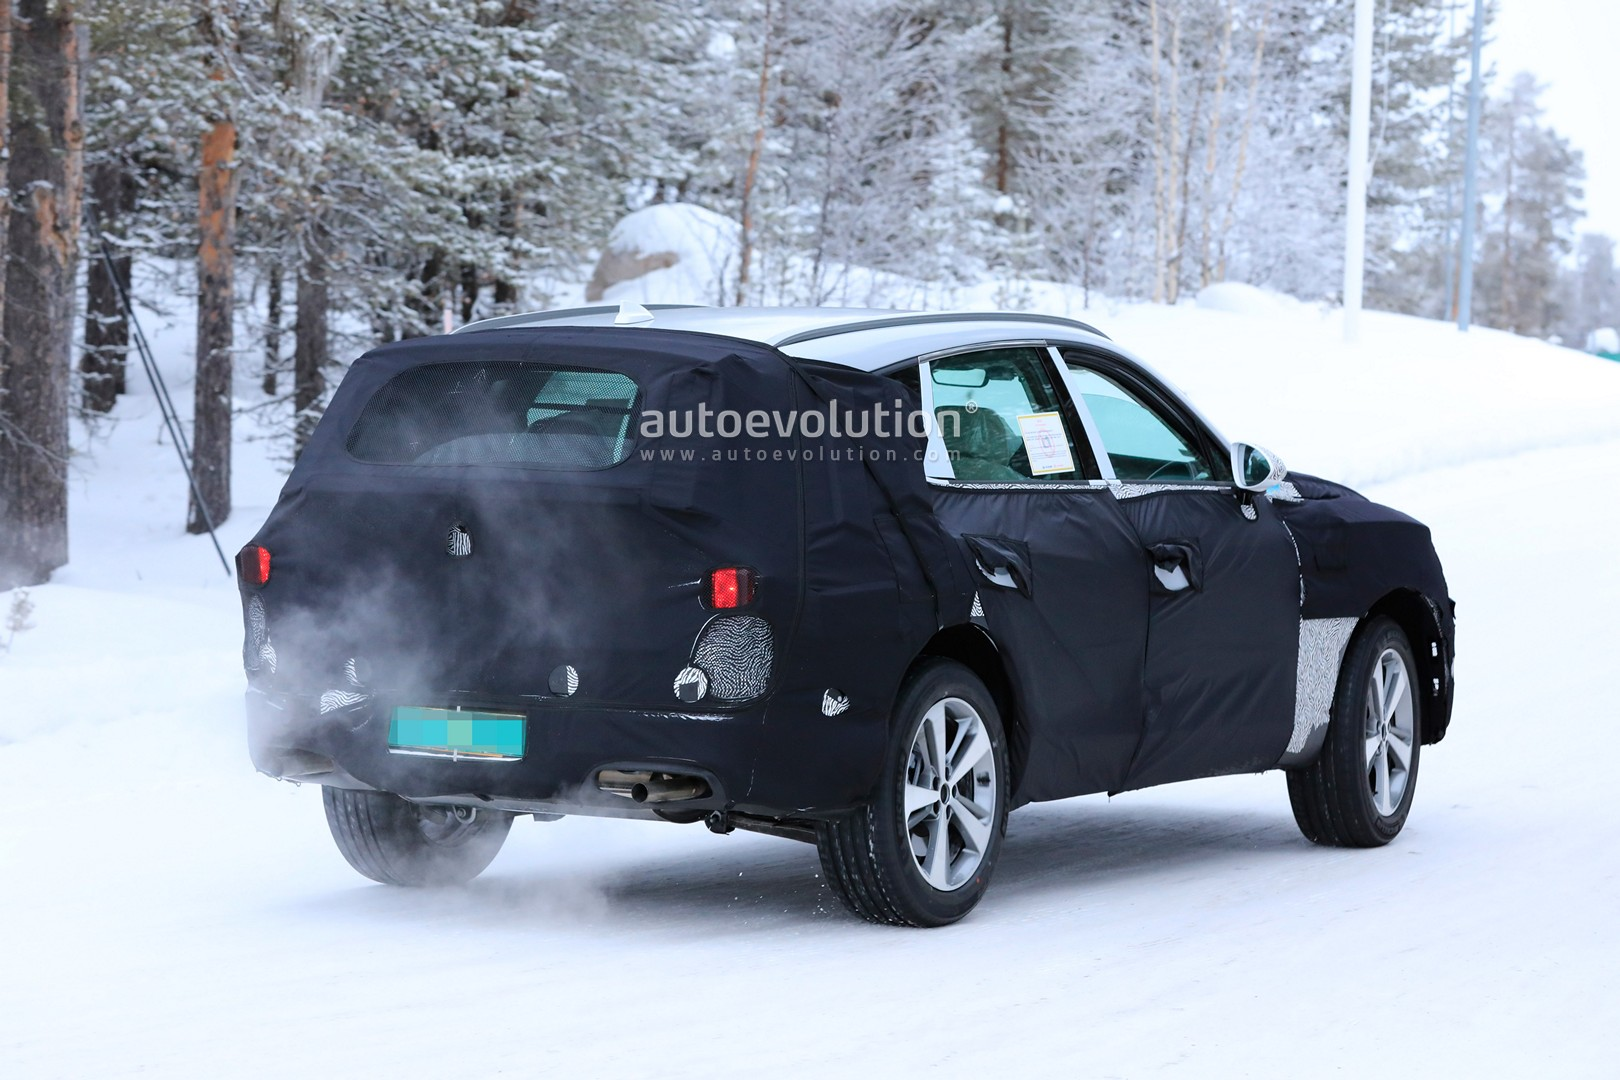 2019 - [Genesis] SUV GV80 - Page 2 Genesis-gv80-suv-prototype-makes-production-spyshots-debut_13